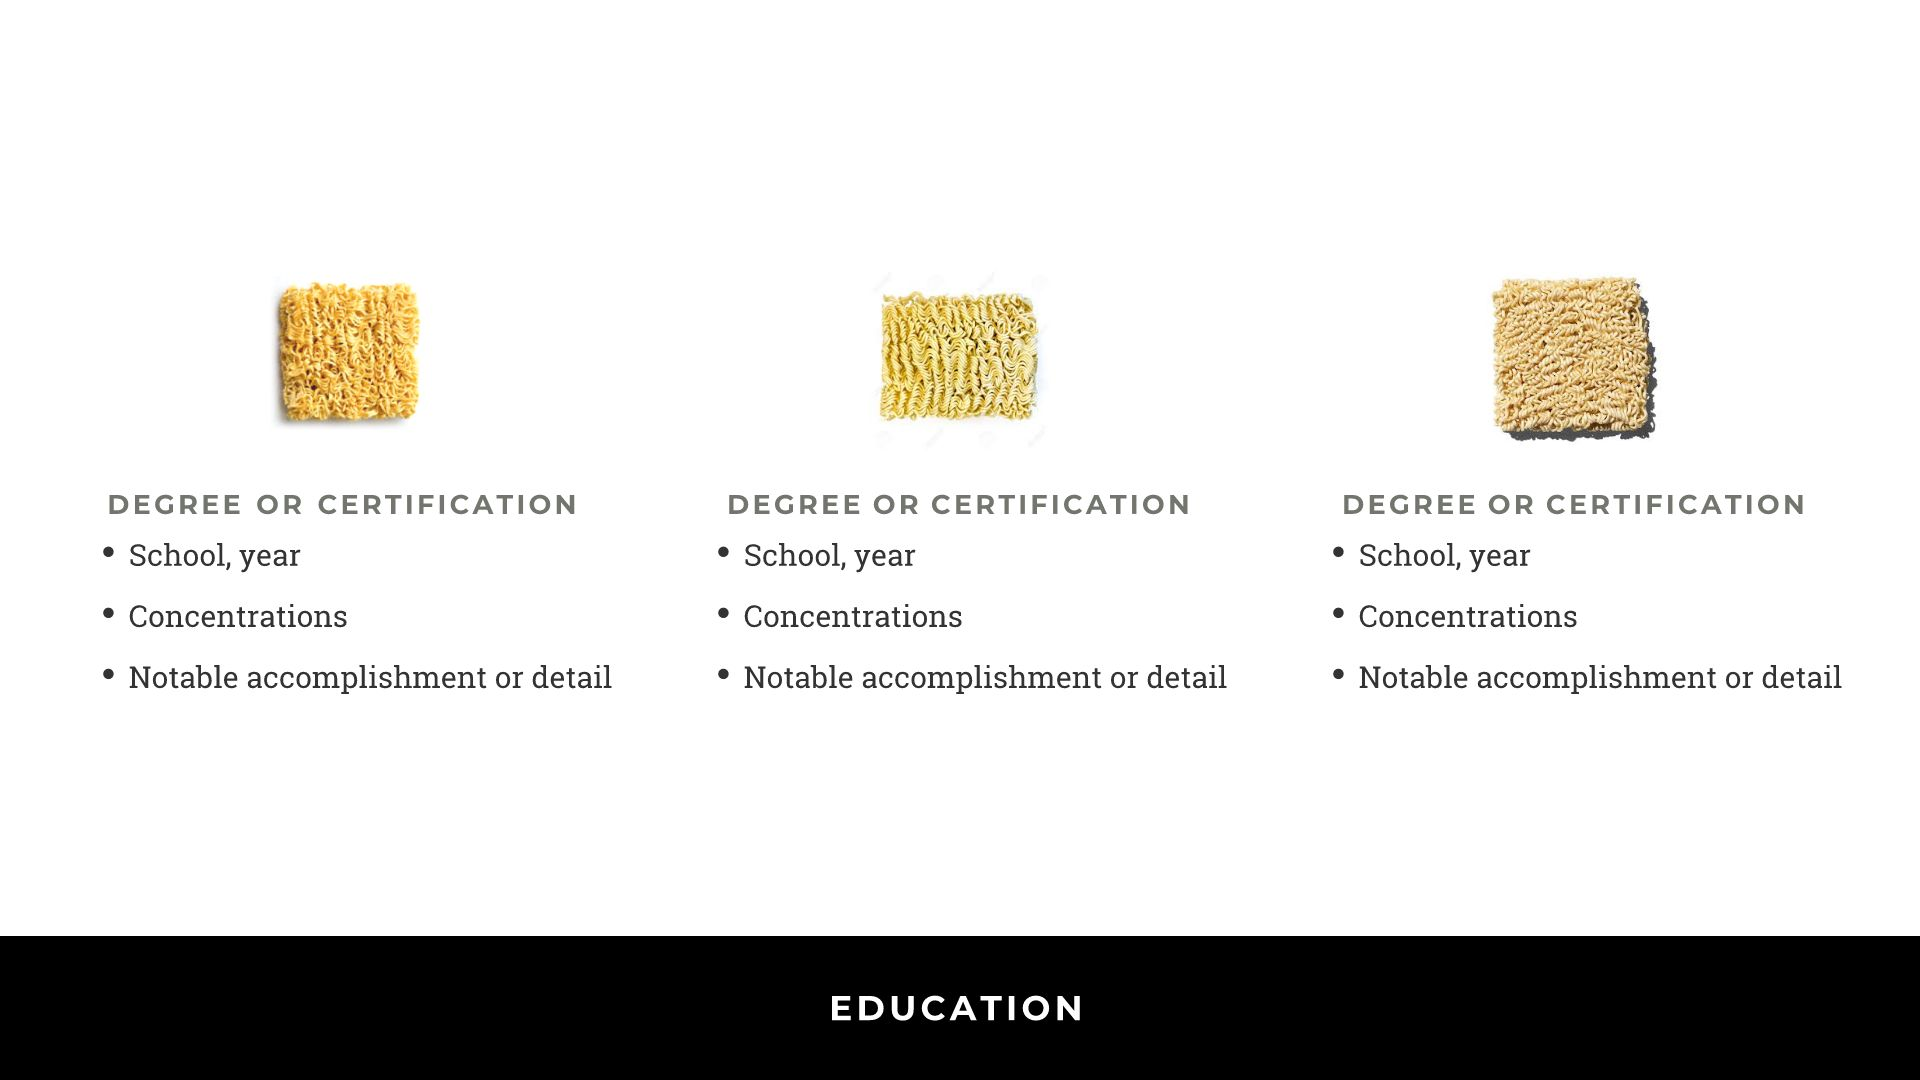 DEGREES/CERTIFICATION